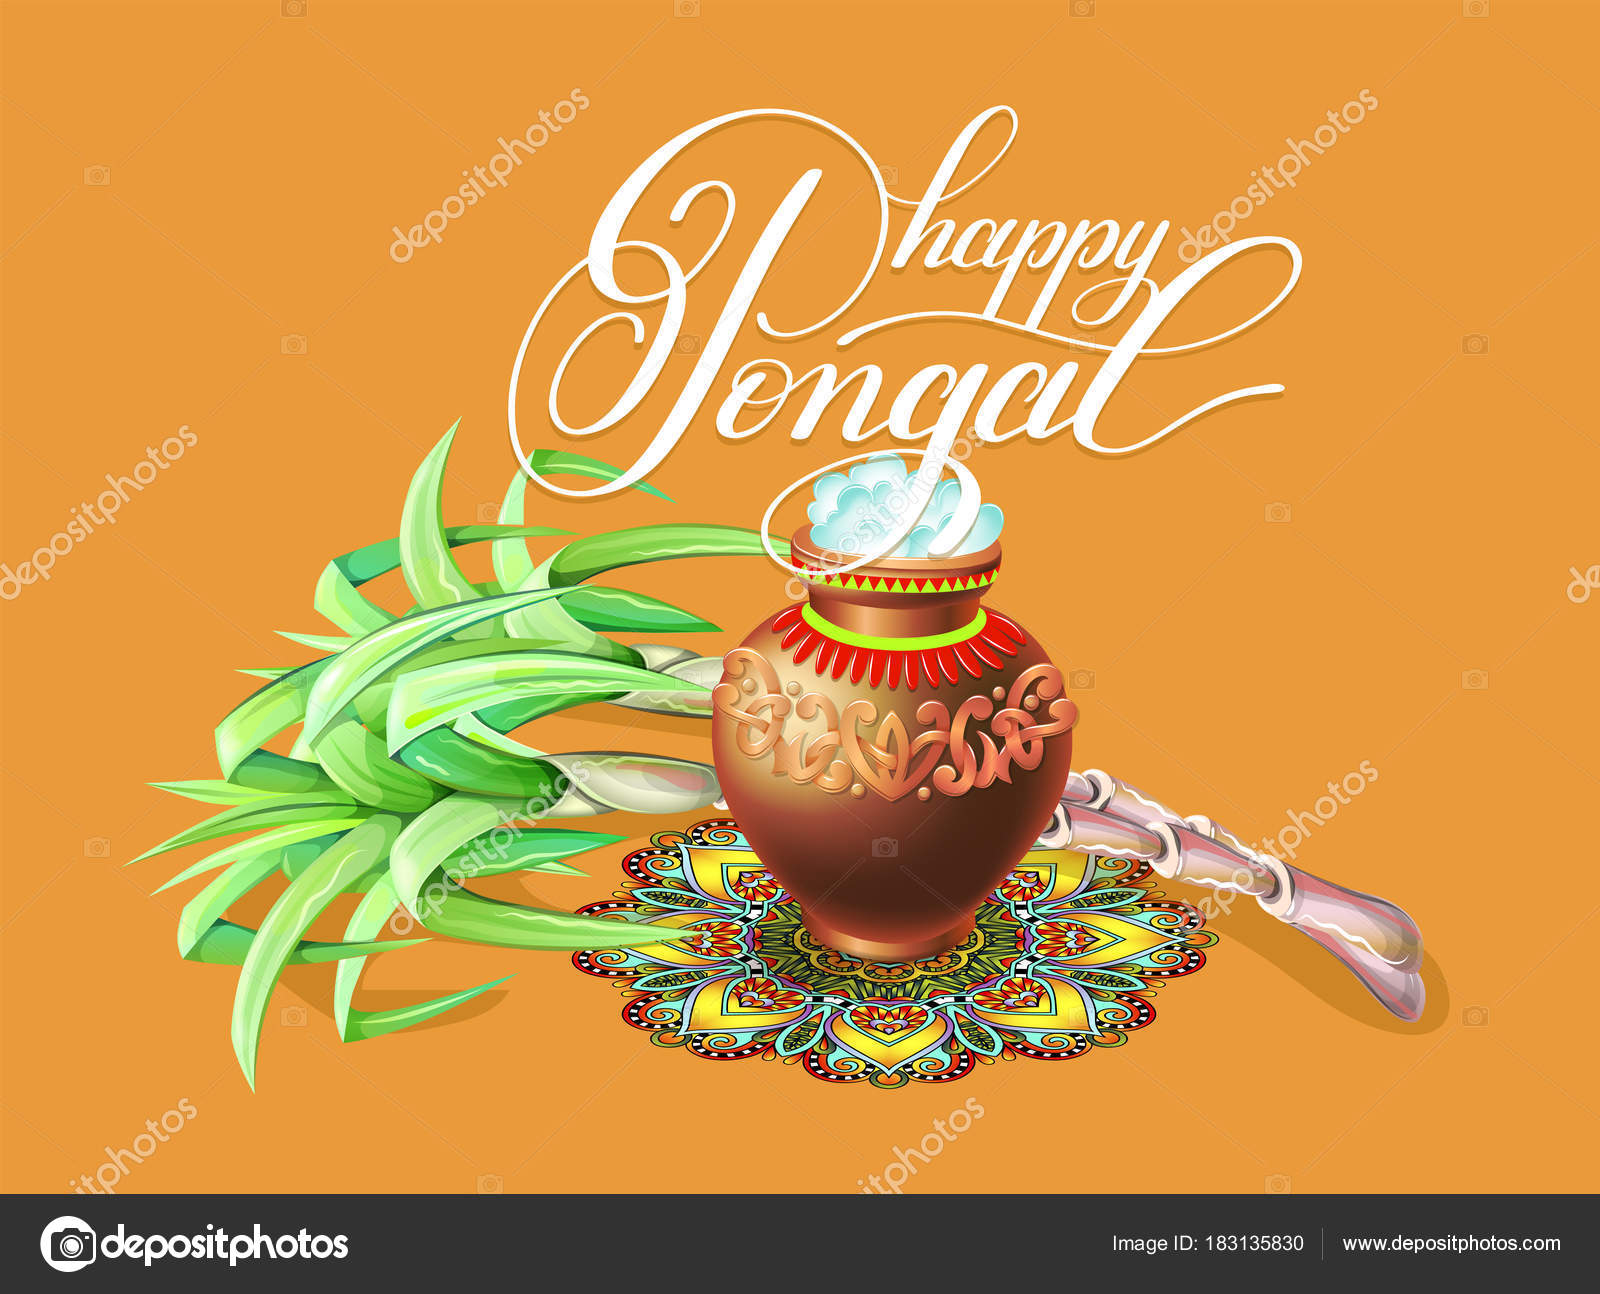 Happy pongal greeting card to south indian winter holiday design happy pongal greeting card to south indian winter holiday design stock vector m4hsunfo